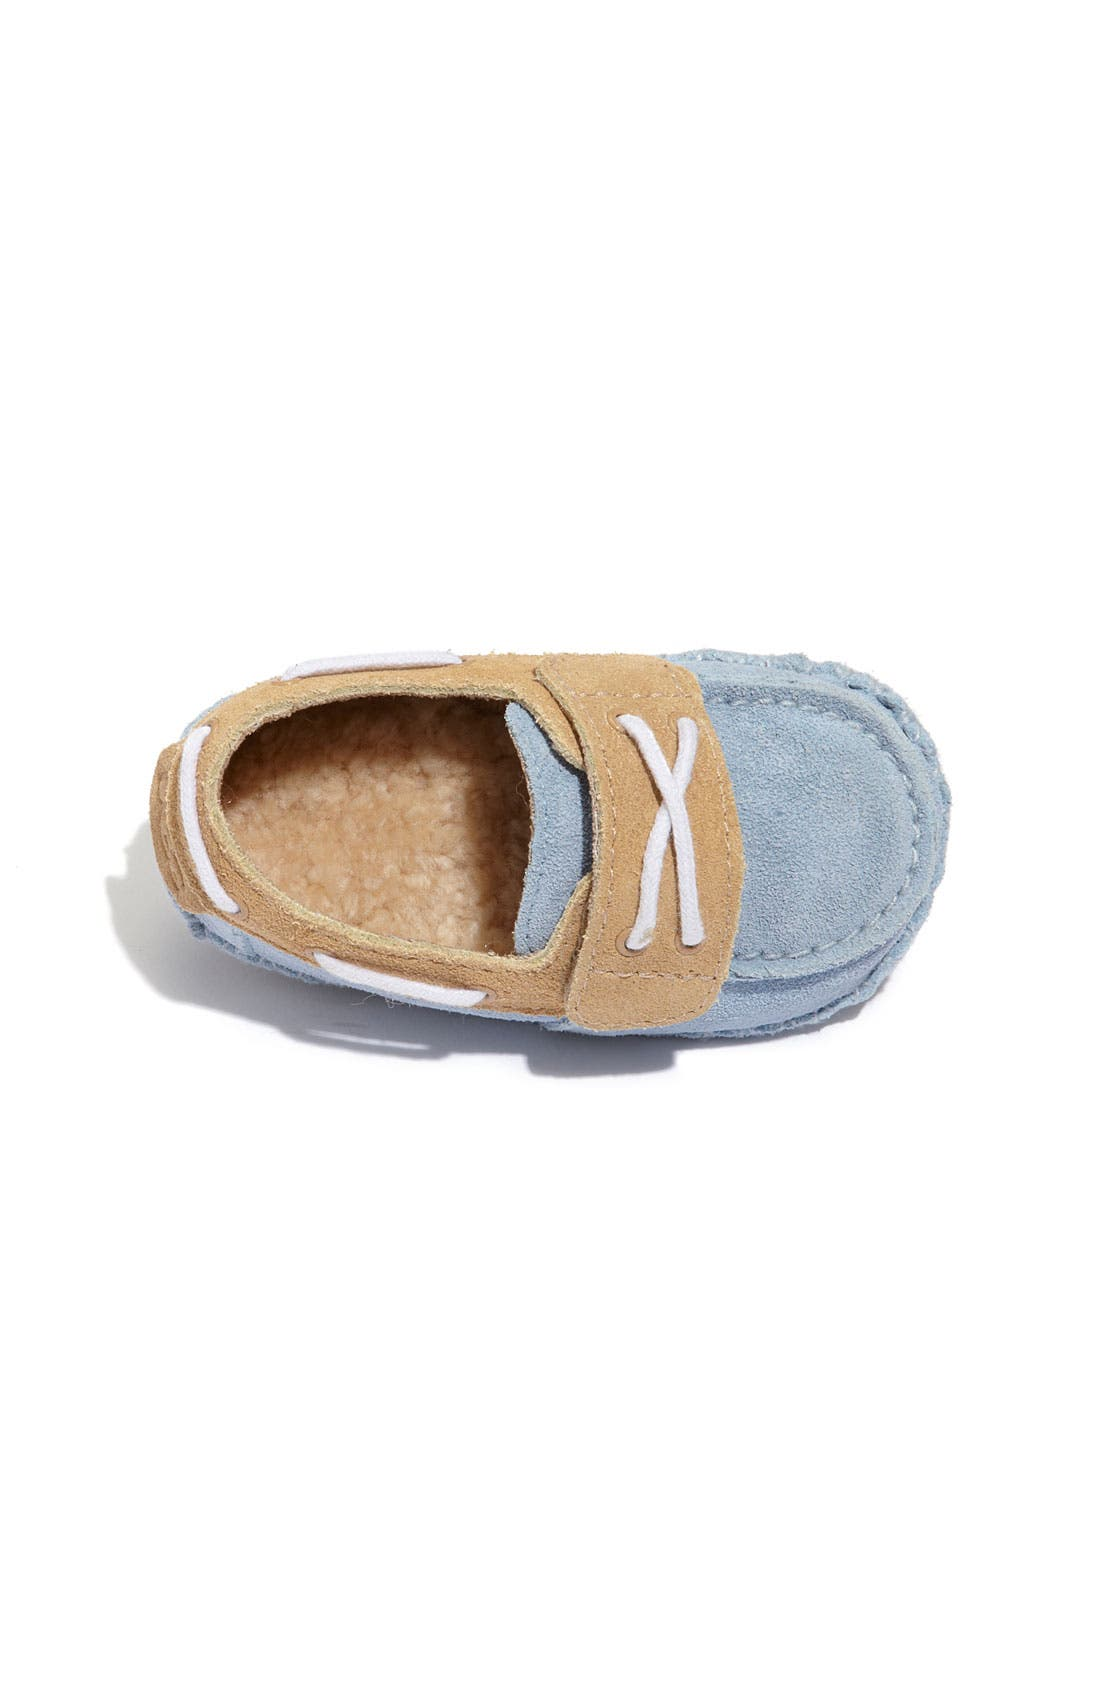 Australia 'Zach' Slip-On,                             Alternate thumbnail 3, color,                             Blue/ Sand